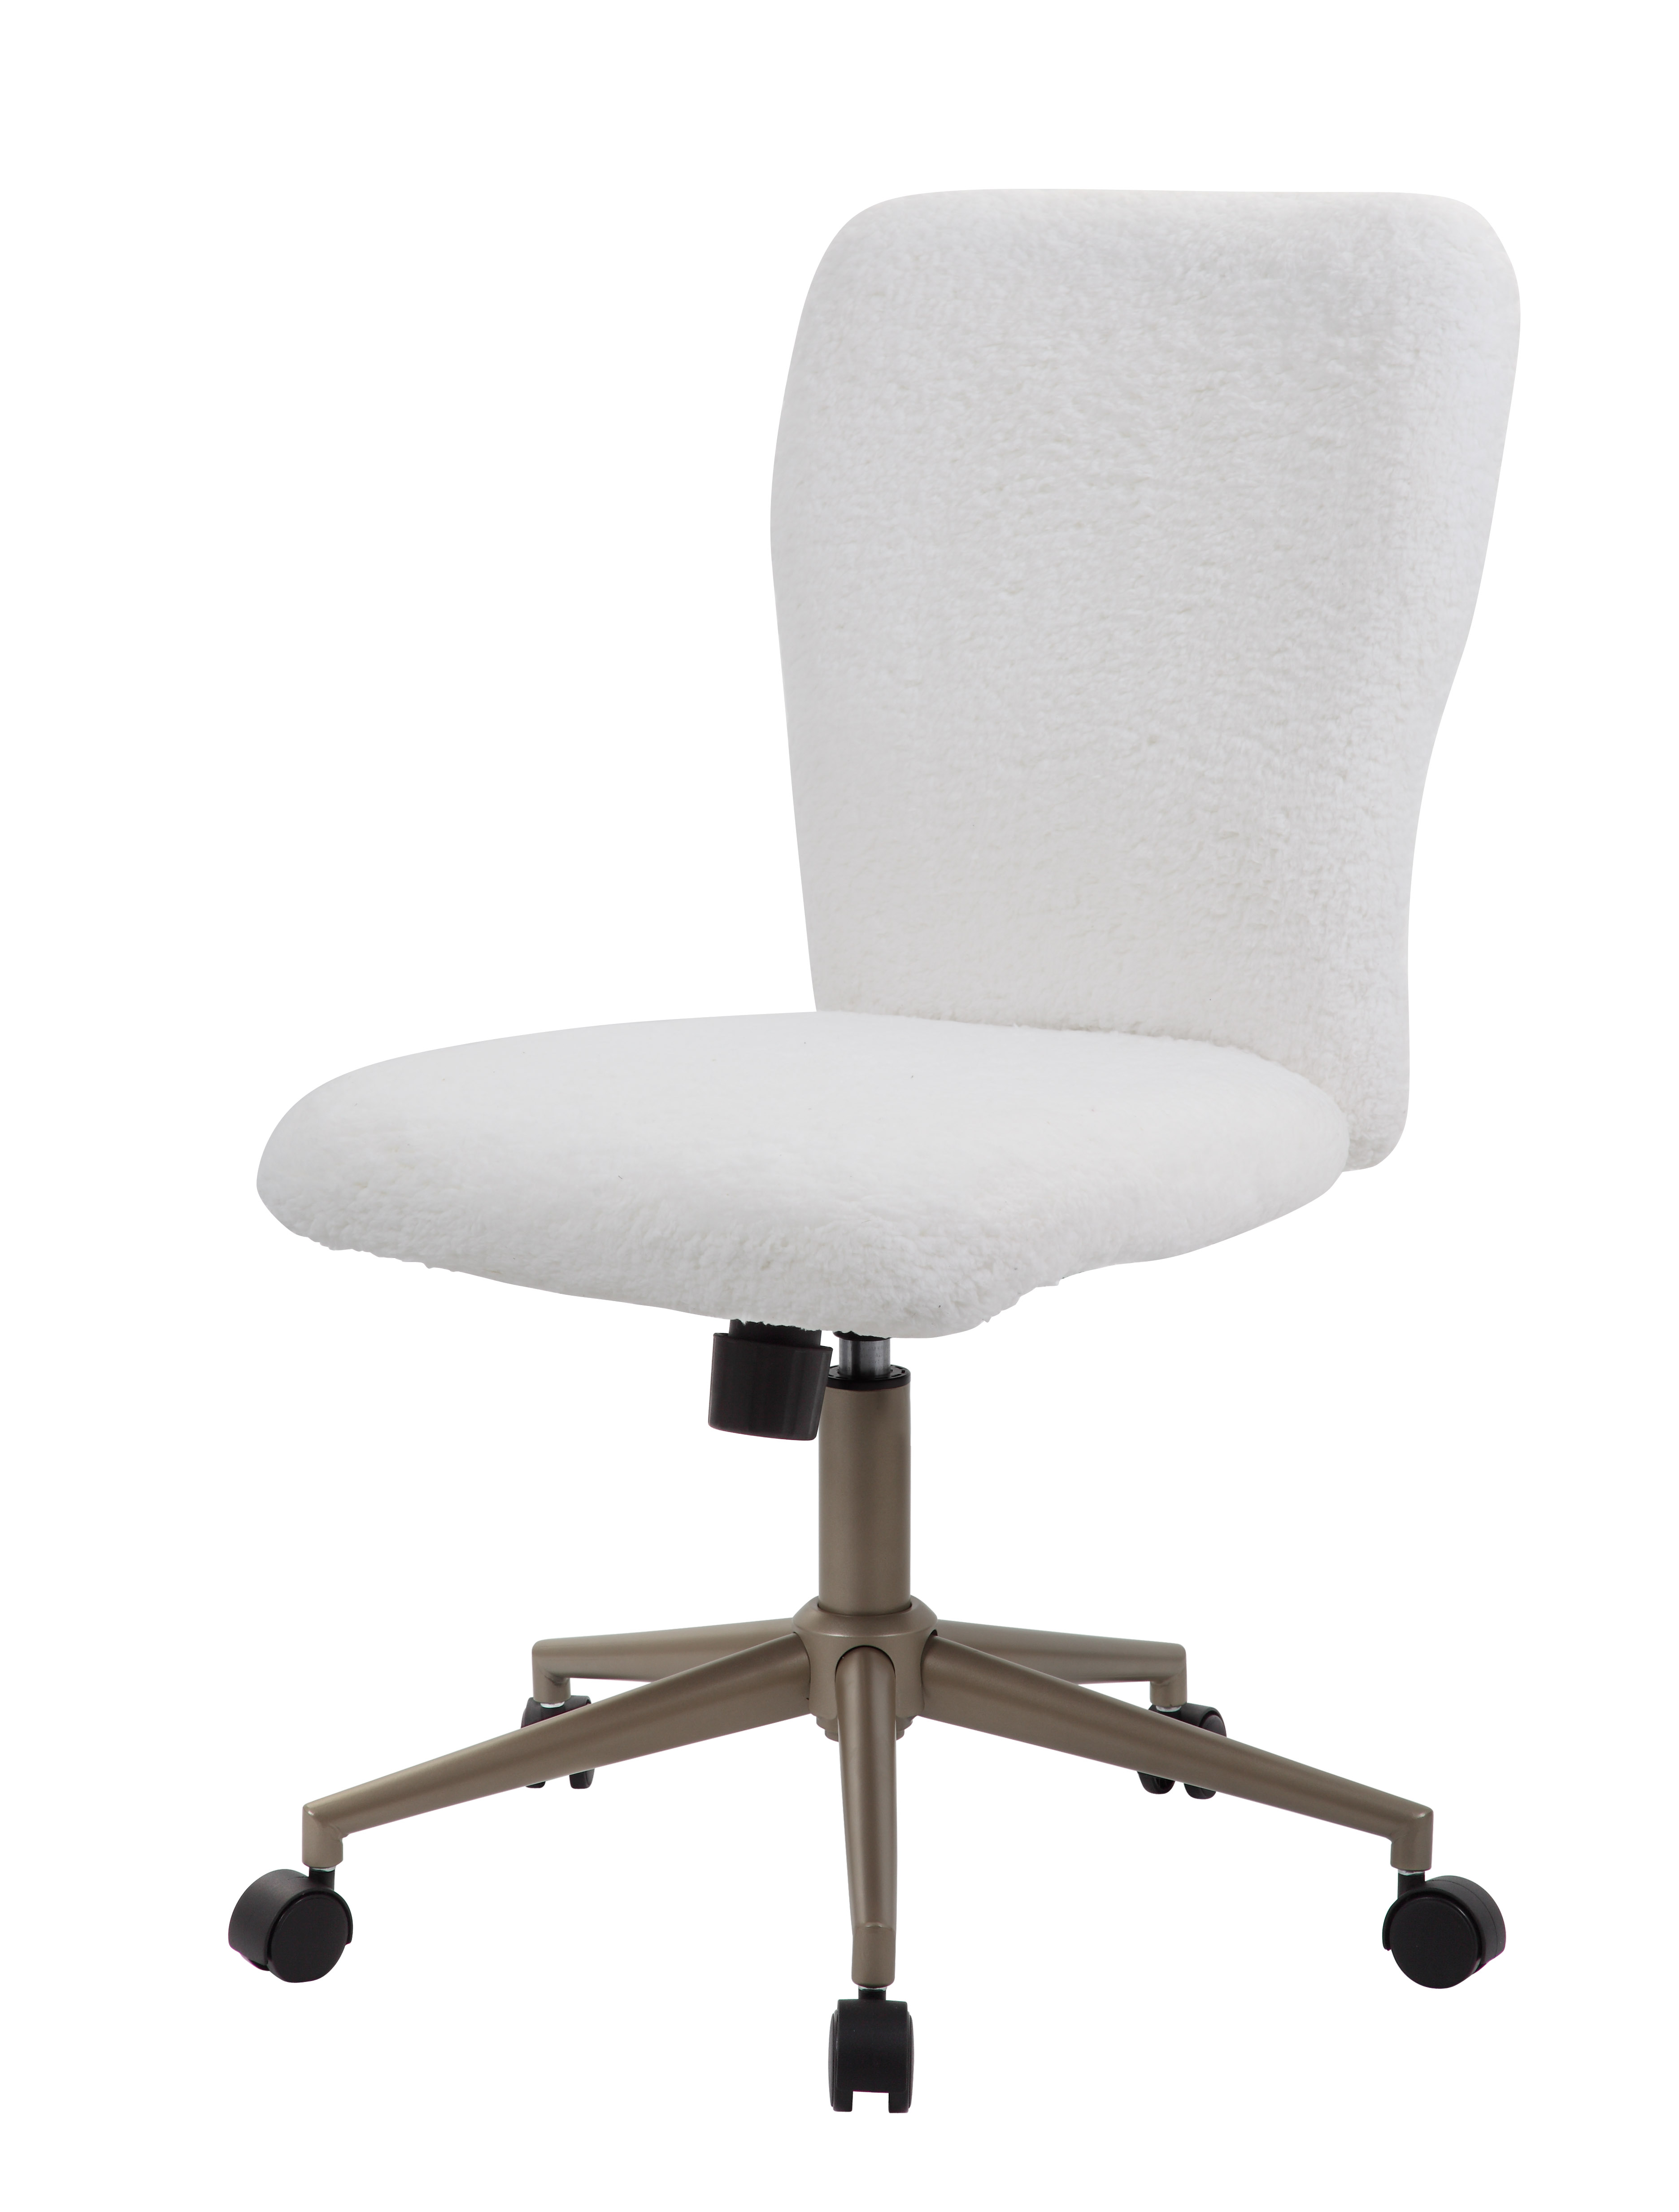 Boss Fur Make Up To Modern Office Chair White